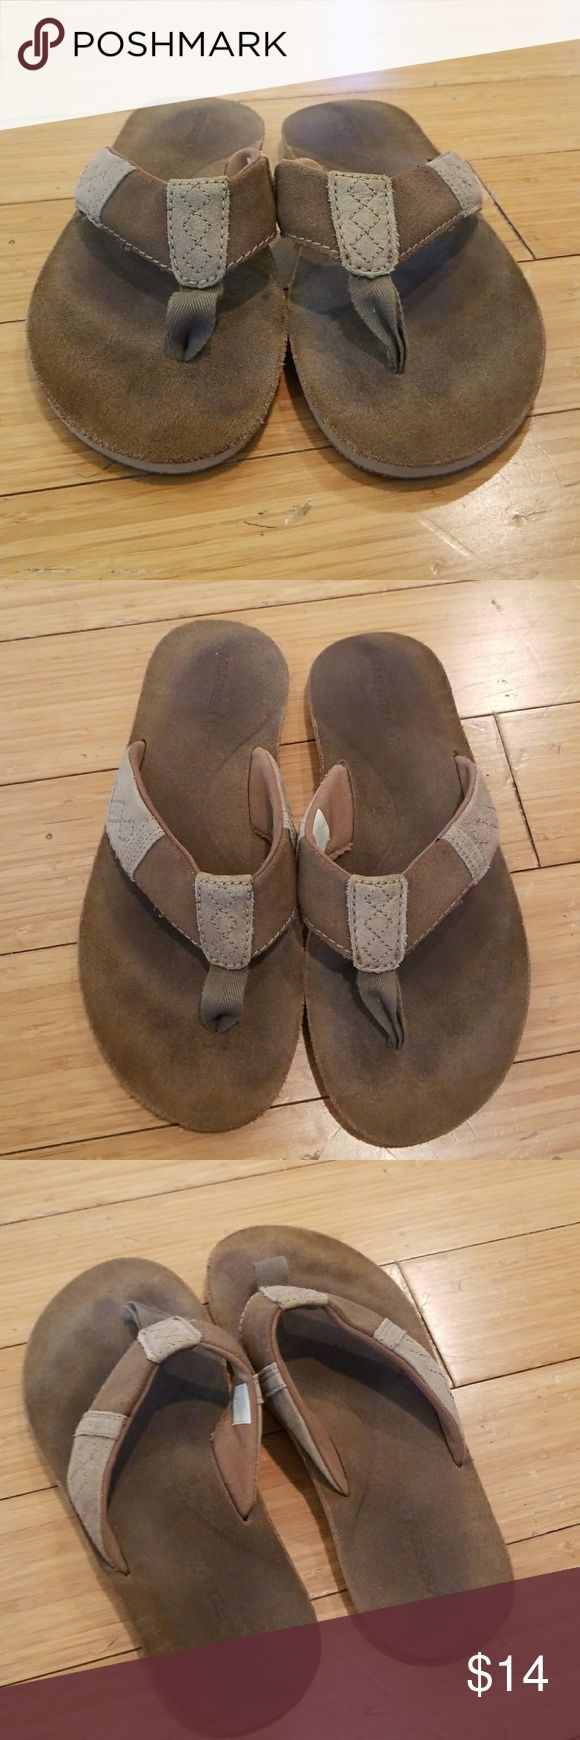 Merrell Men's leather Flip Flops Used. Merrell Shoes Sandals & Flip-Flops